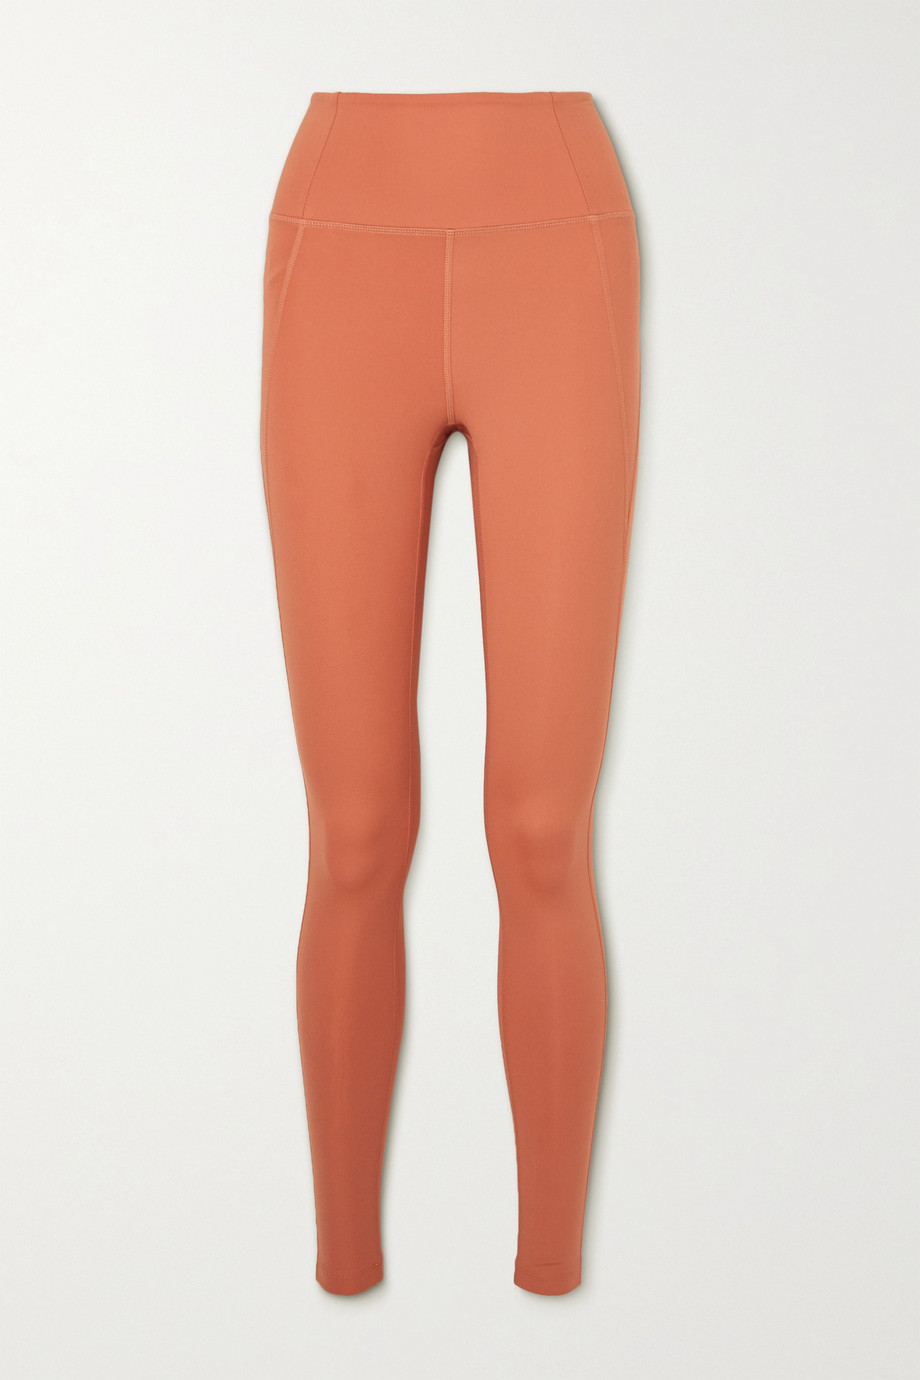 Girlfriend Collective Legging de compression stretch